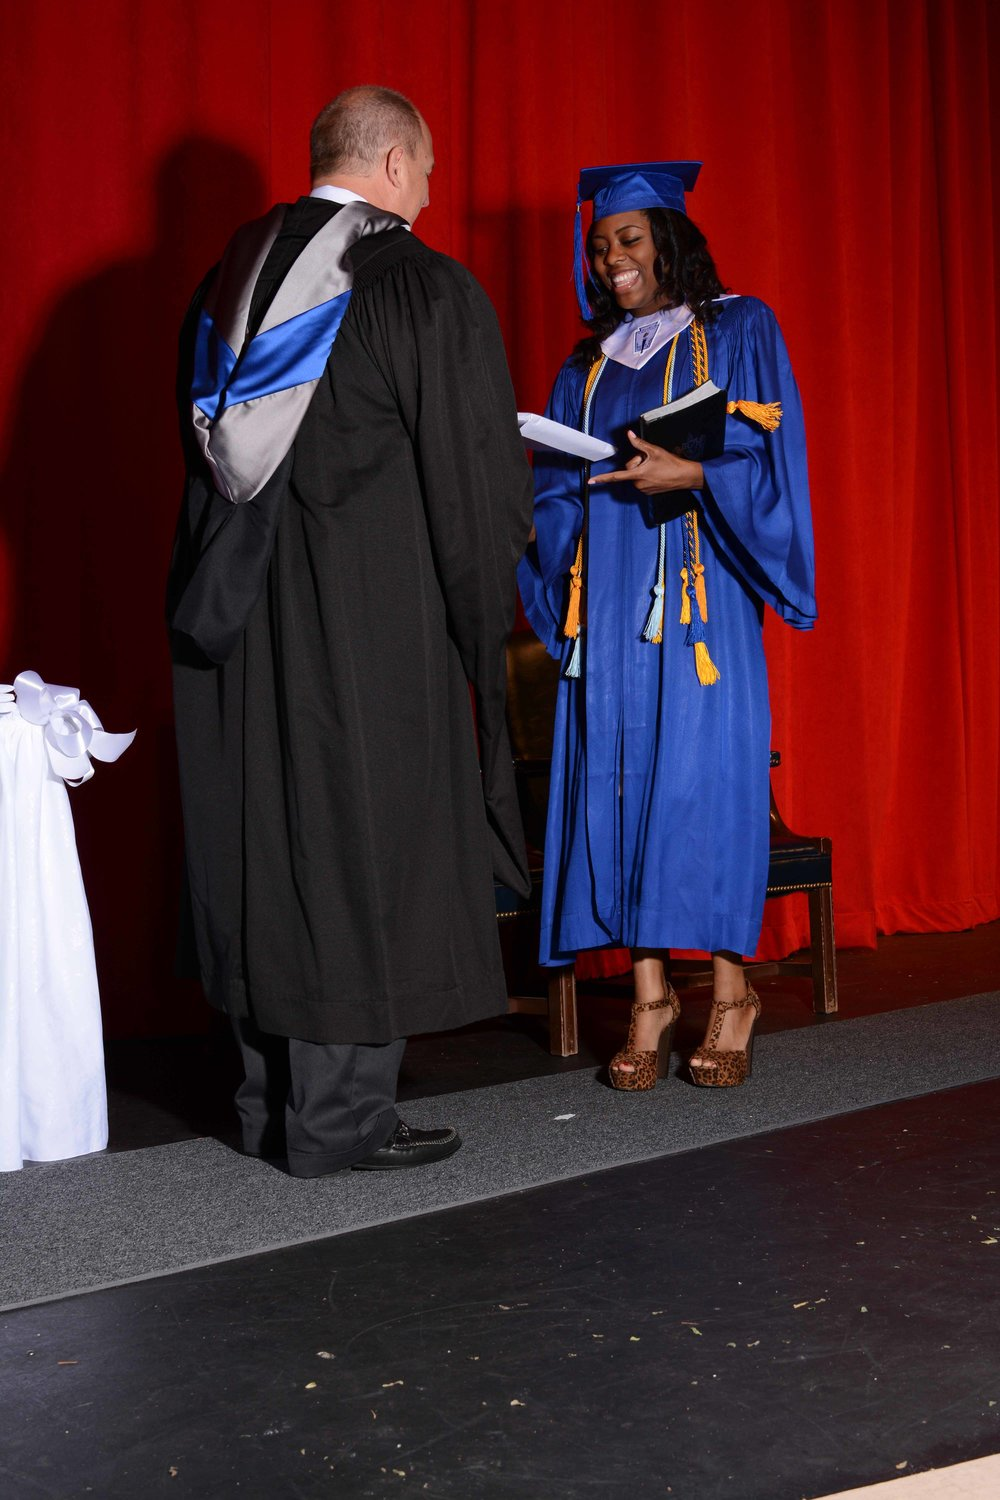 May15 HardingGraduation53.jpg